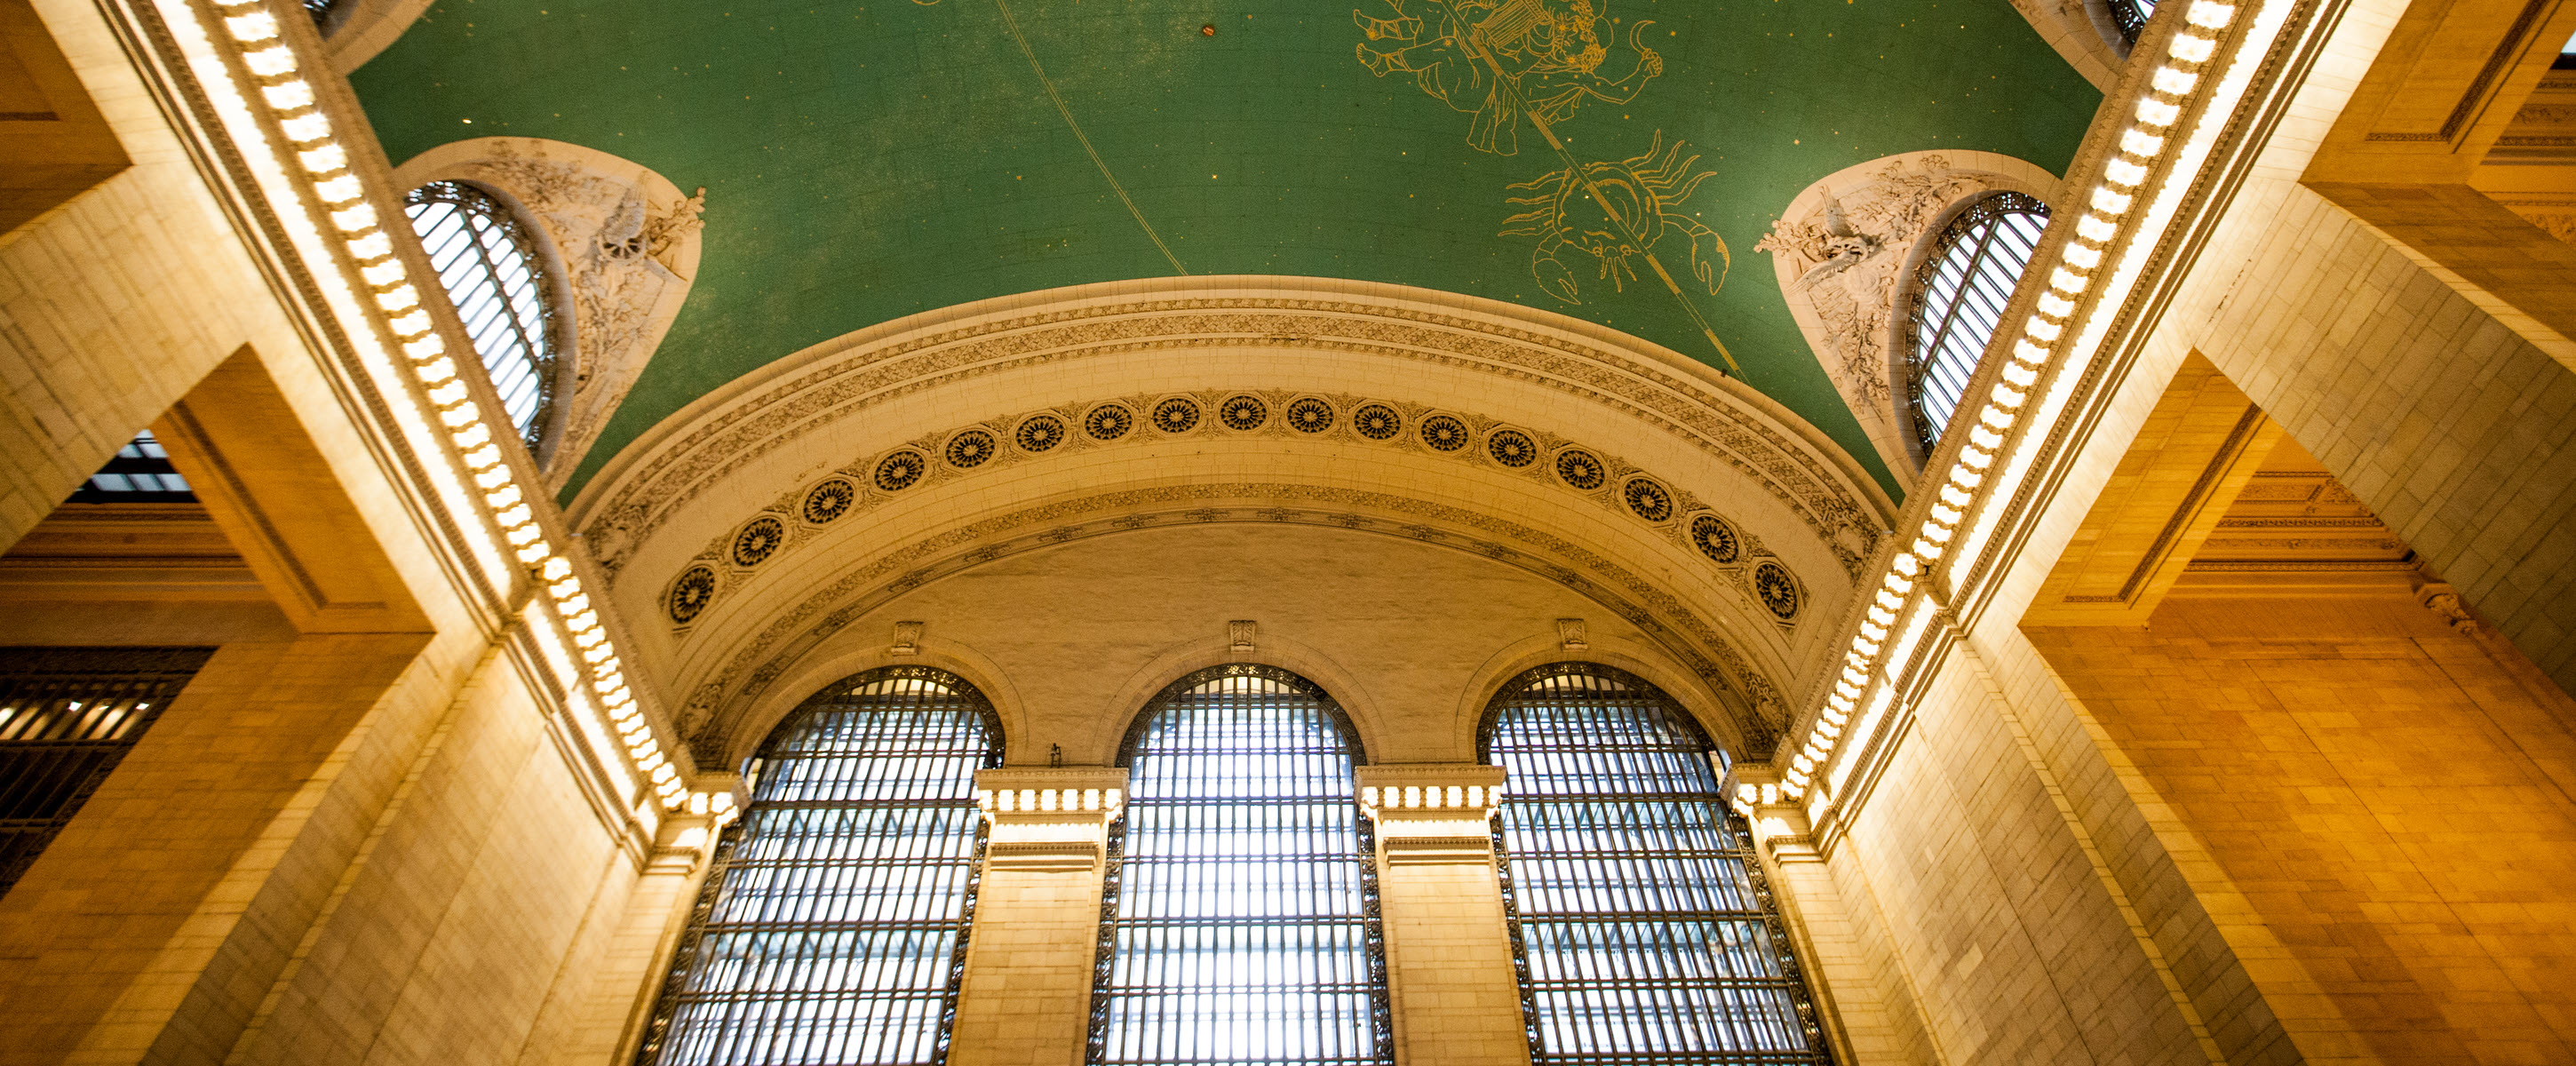 Green Ceiling with Gold Designs in Grand Central Station